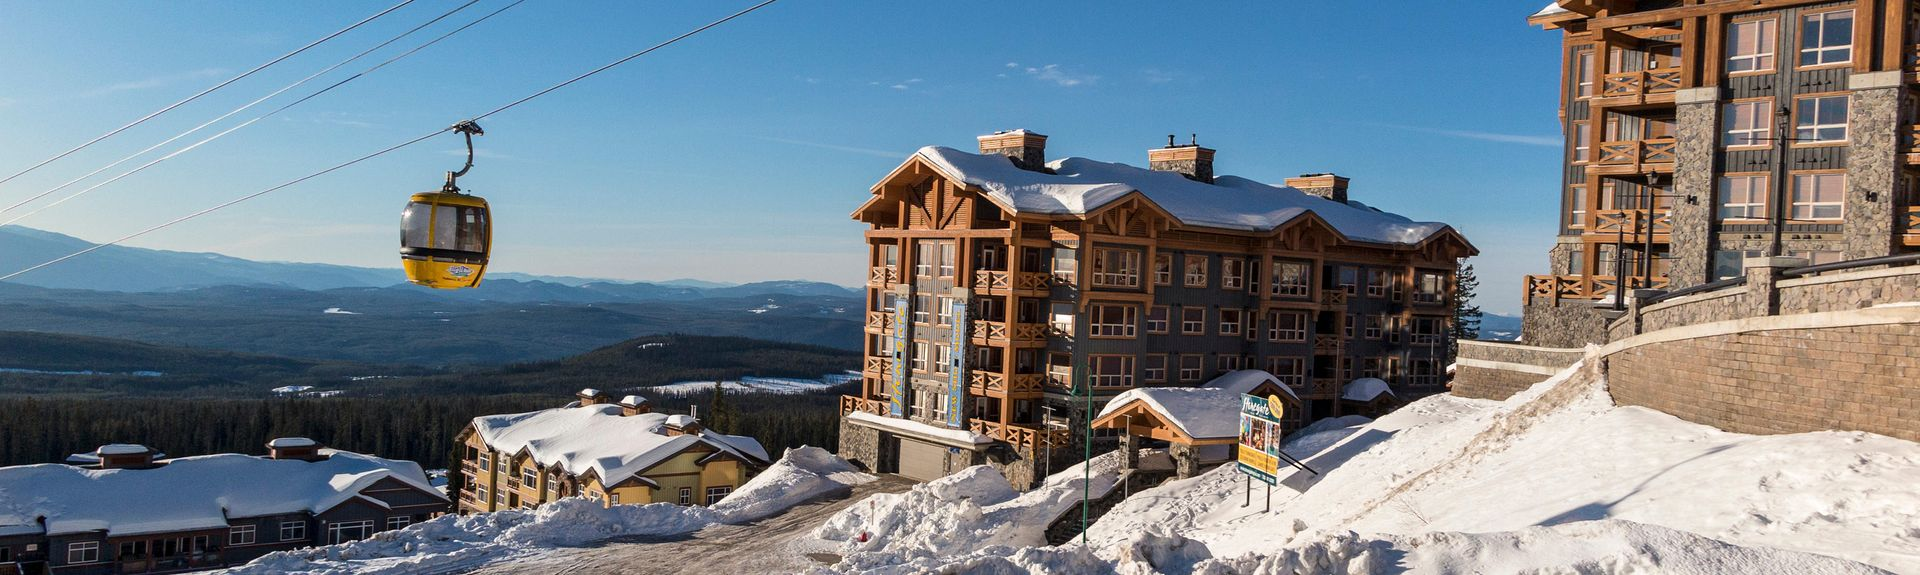 Big White Ski Resort, Beaverdell, British Columbia, Kanada